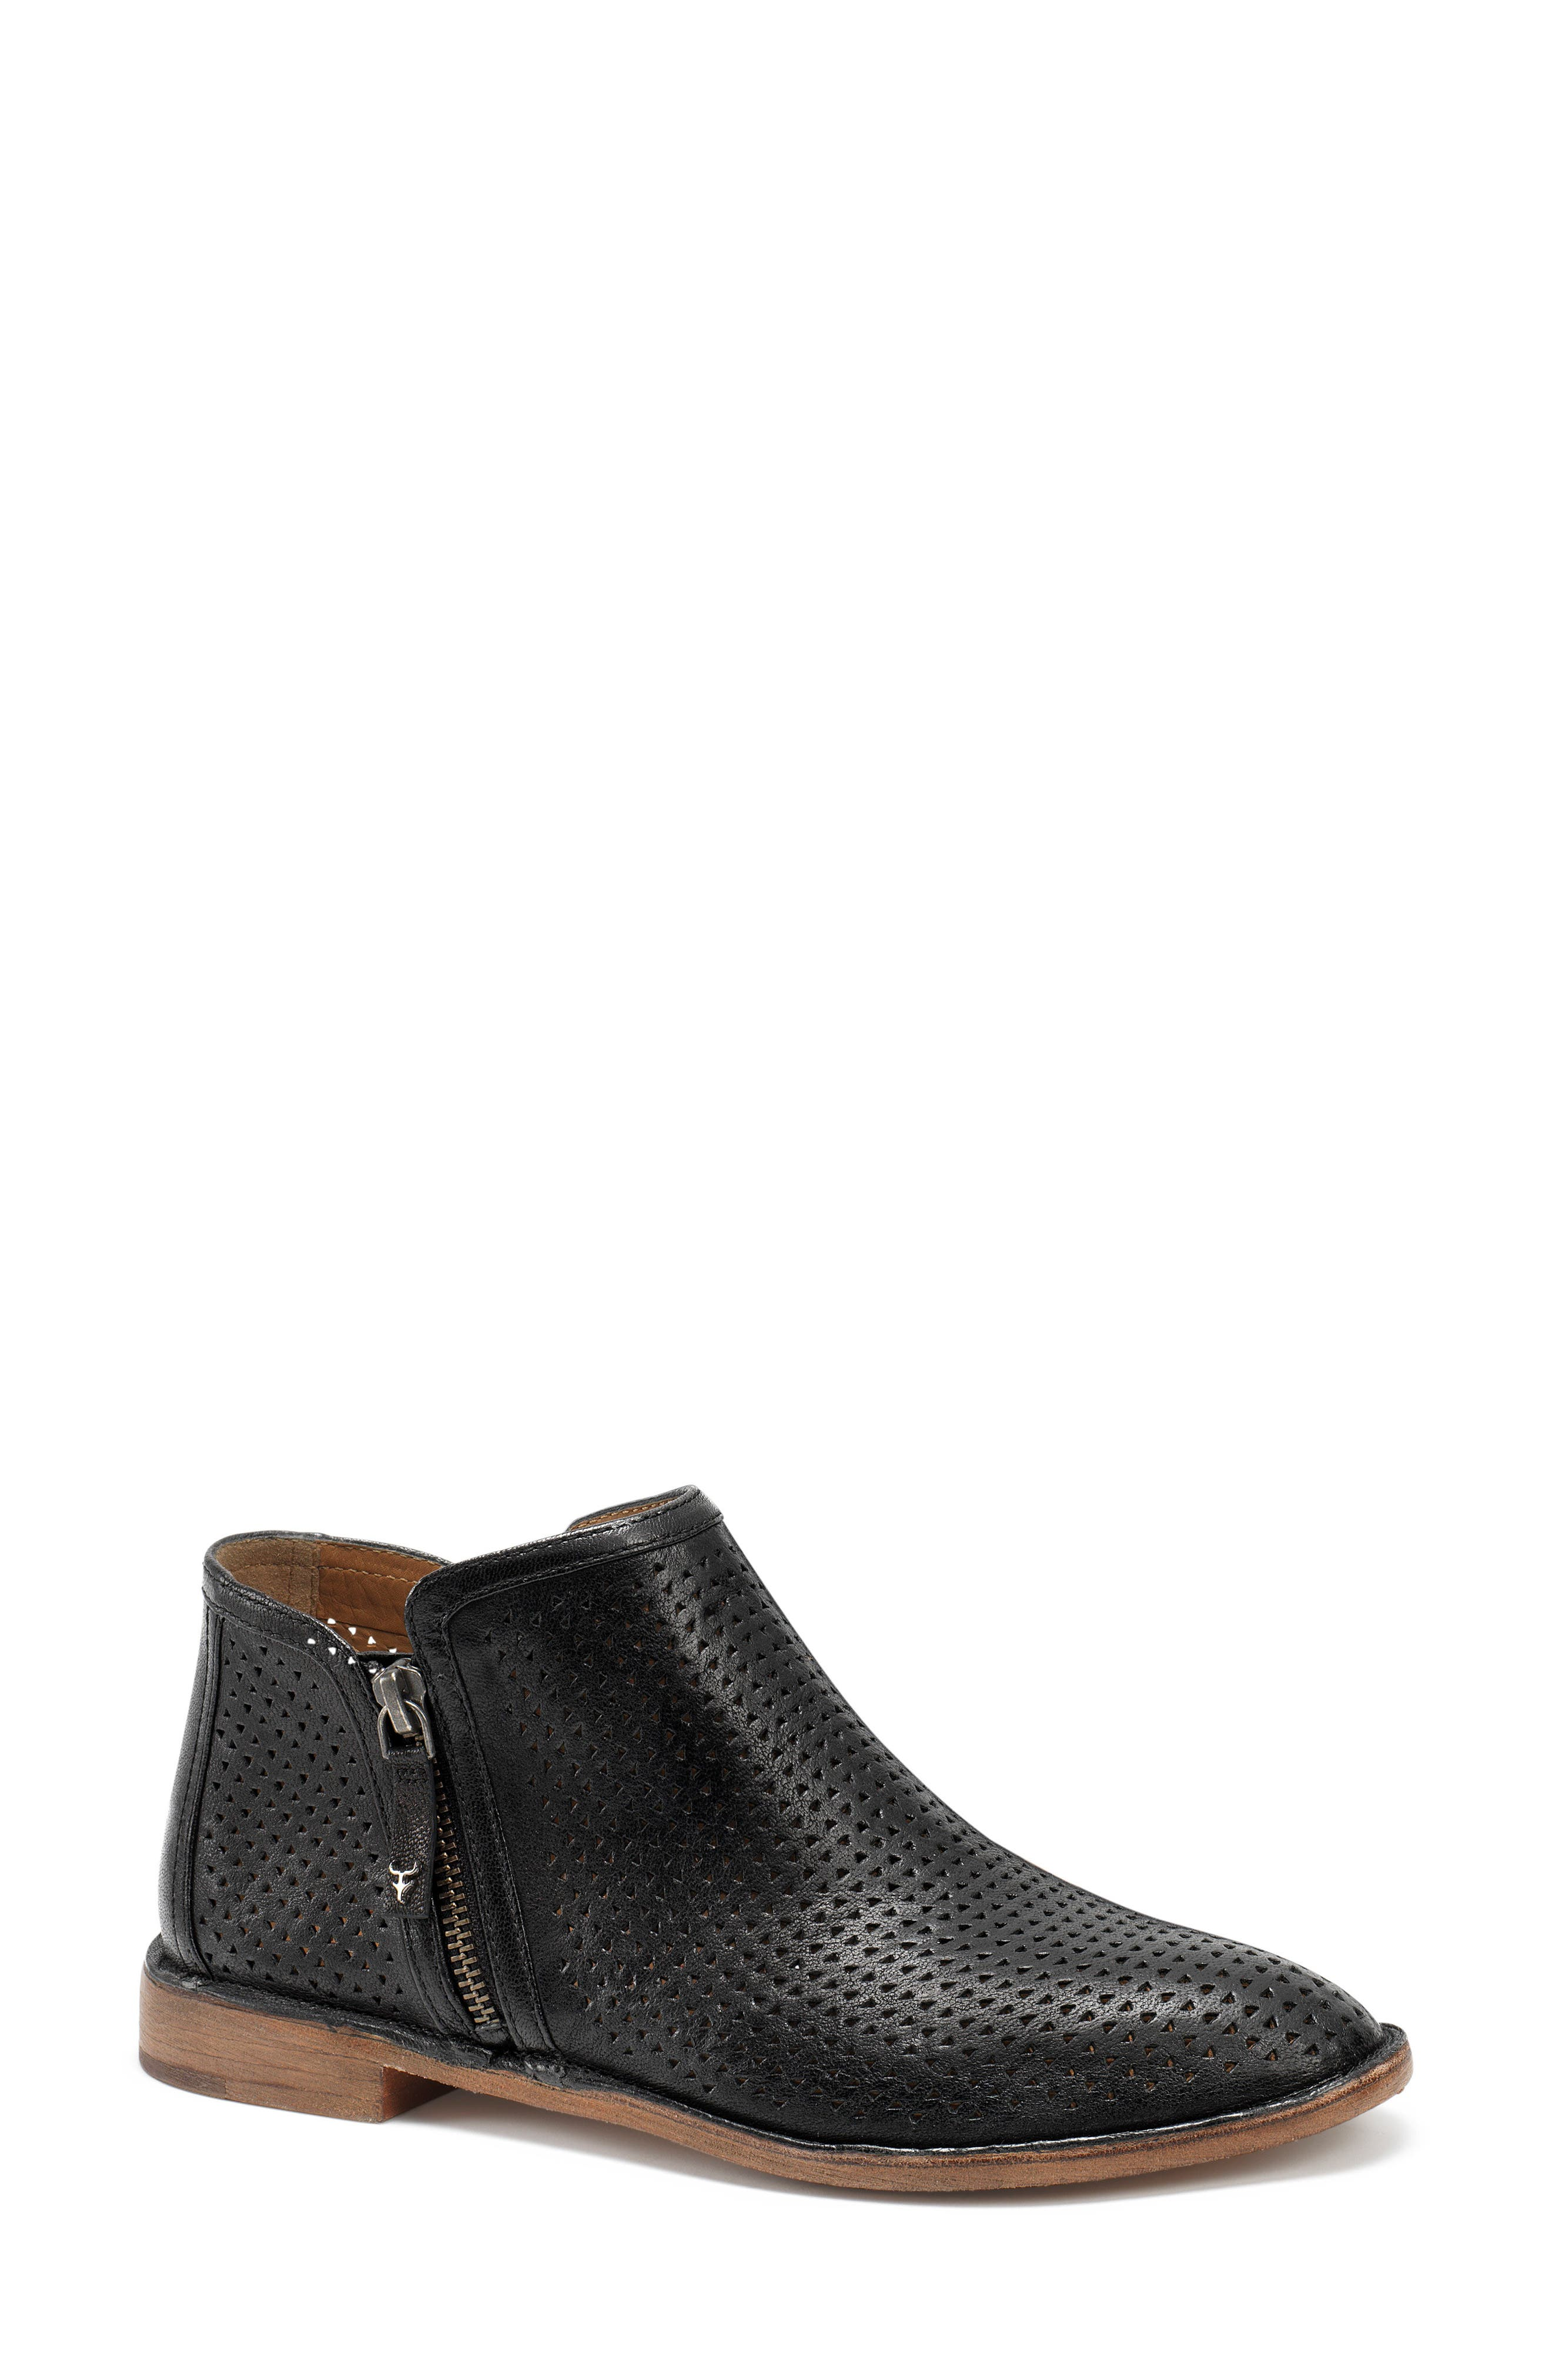 Trask Addison Low Perforated Bootie (Women)